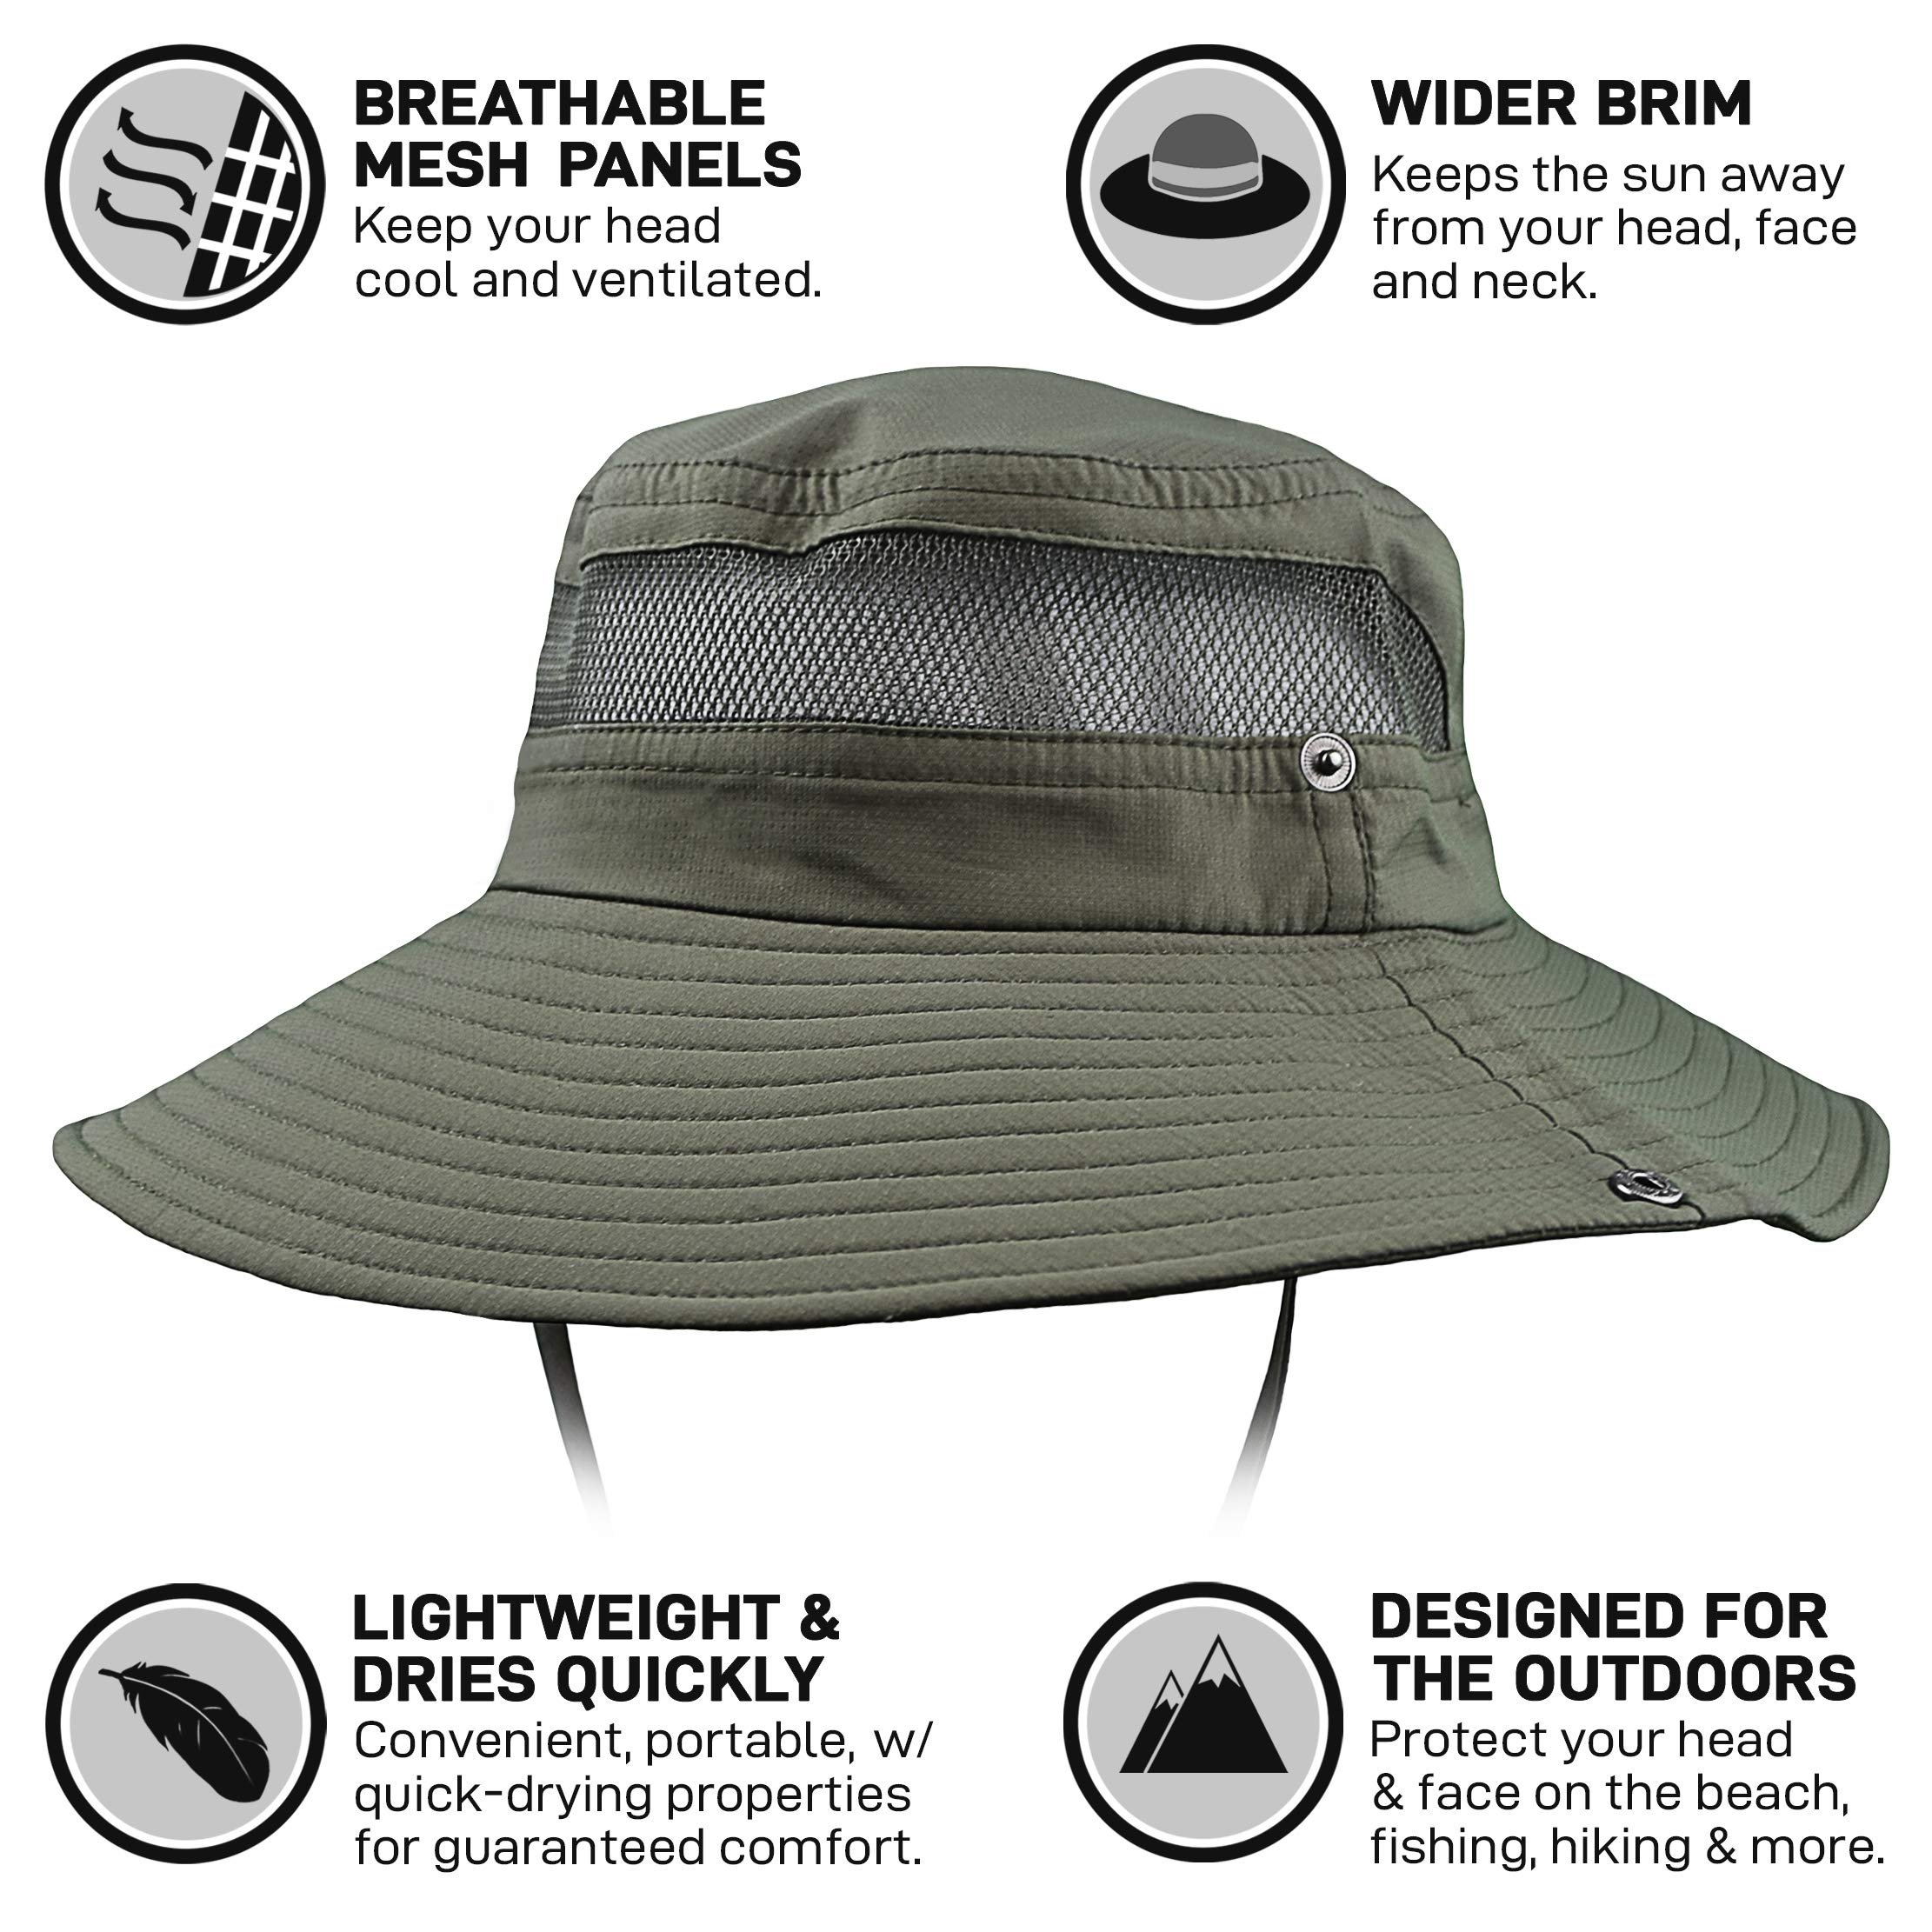 GearTOP Fishing Hat and Safari Cap with Sun Protection | Premium Hats for Men and Women (Army Green - 2 Pack) by GearTOP (Image #4)